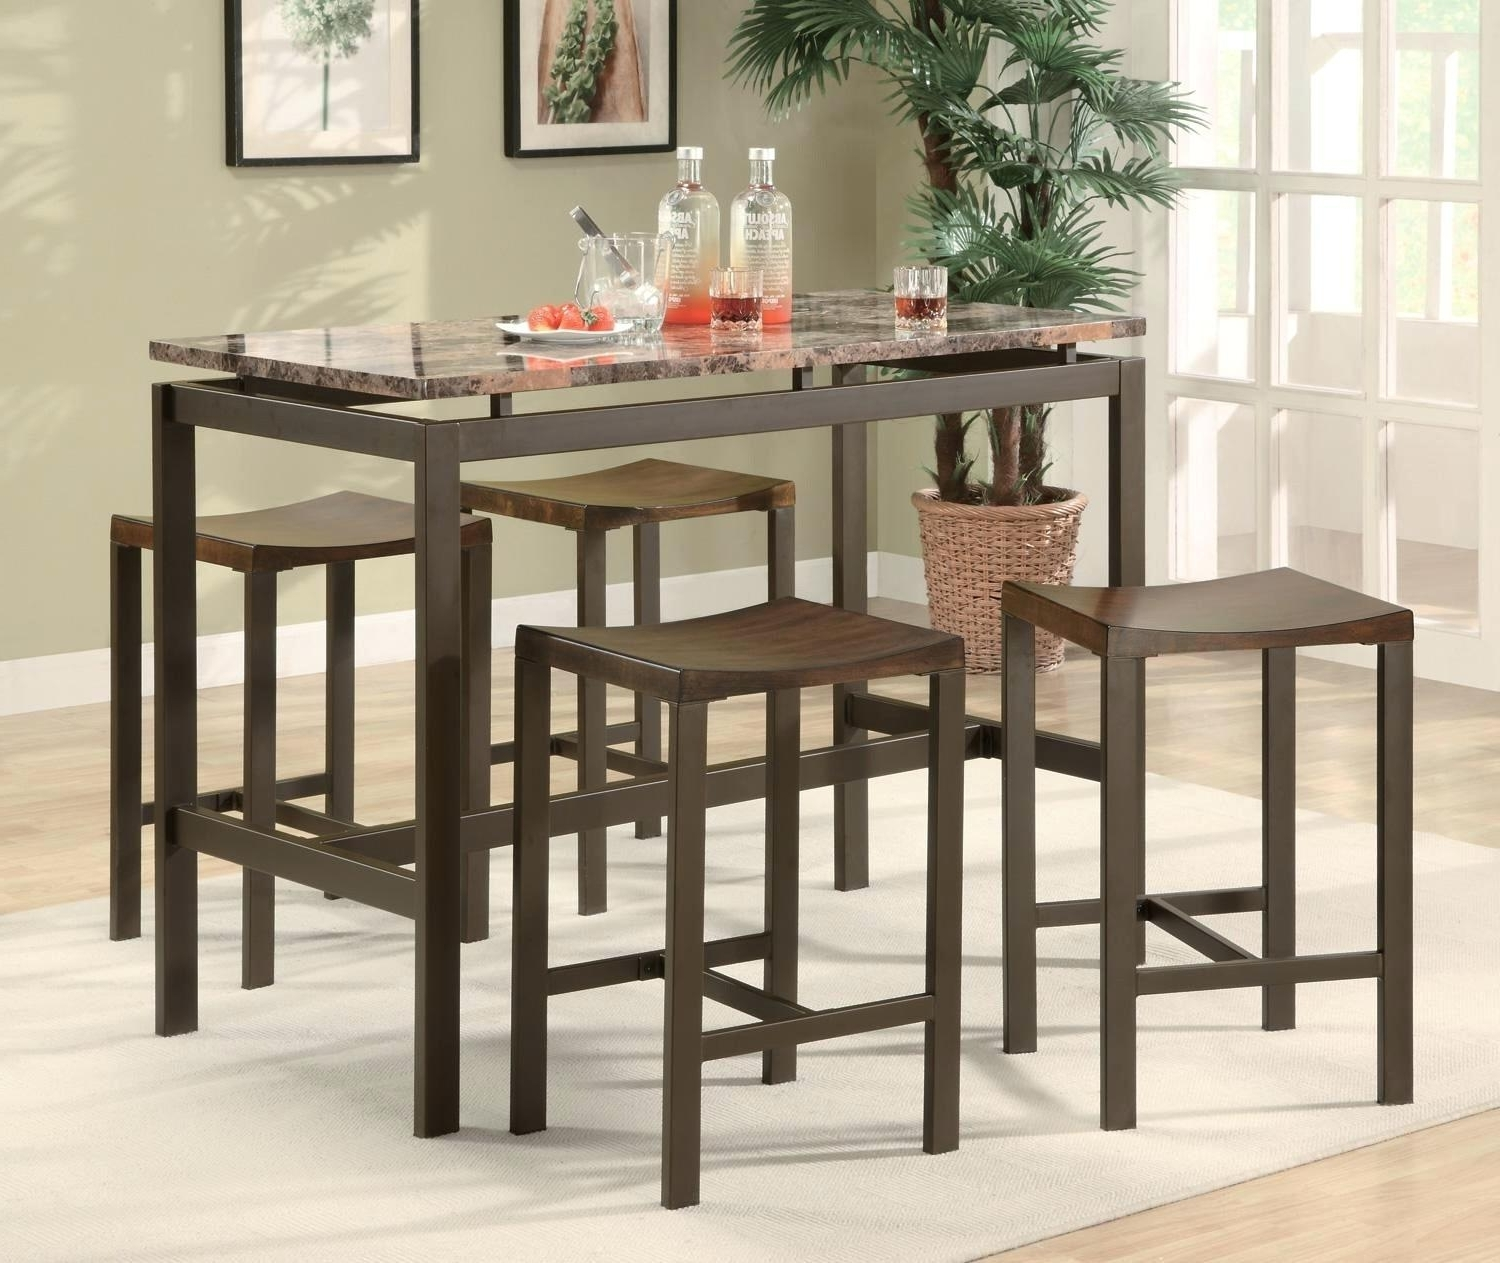 2018 Hyland Counter Height Dining Room Table – Ocane Throughout Hyland 5 Piece Counter Sets With Stools (View 1 of 25)